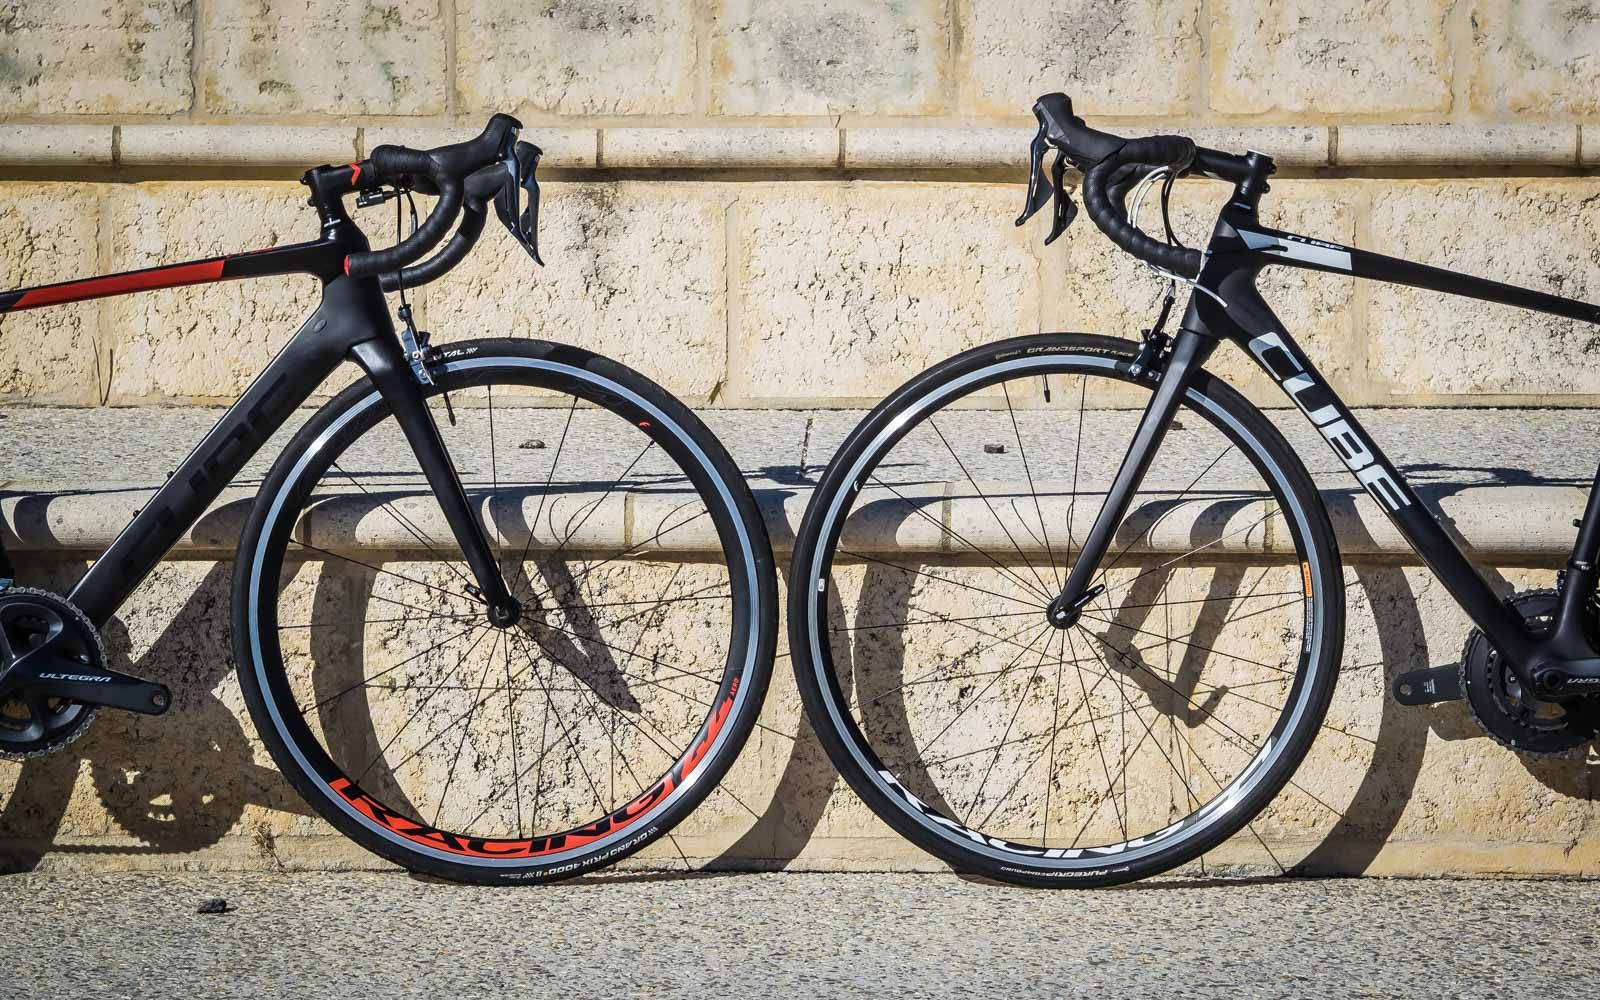 Cube Agree C 62 Sl And Cube Attain Gtc Sl Road Bike Review With